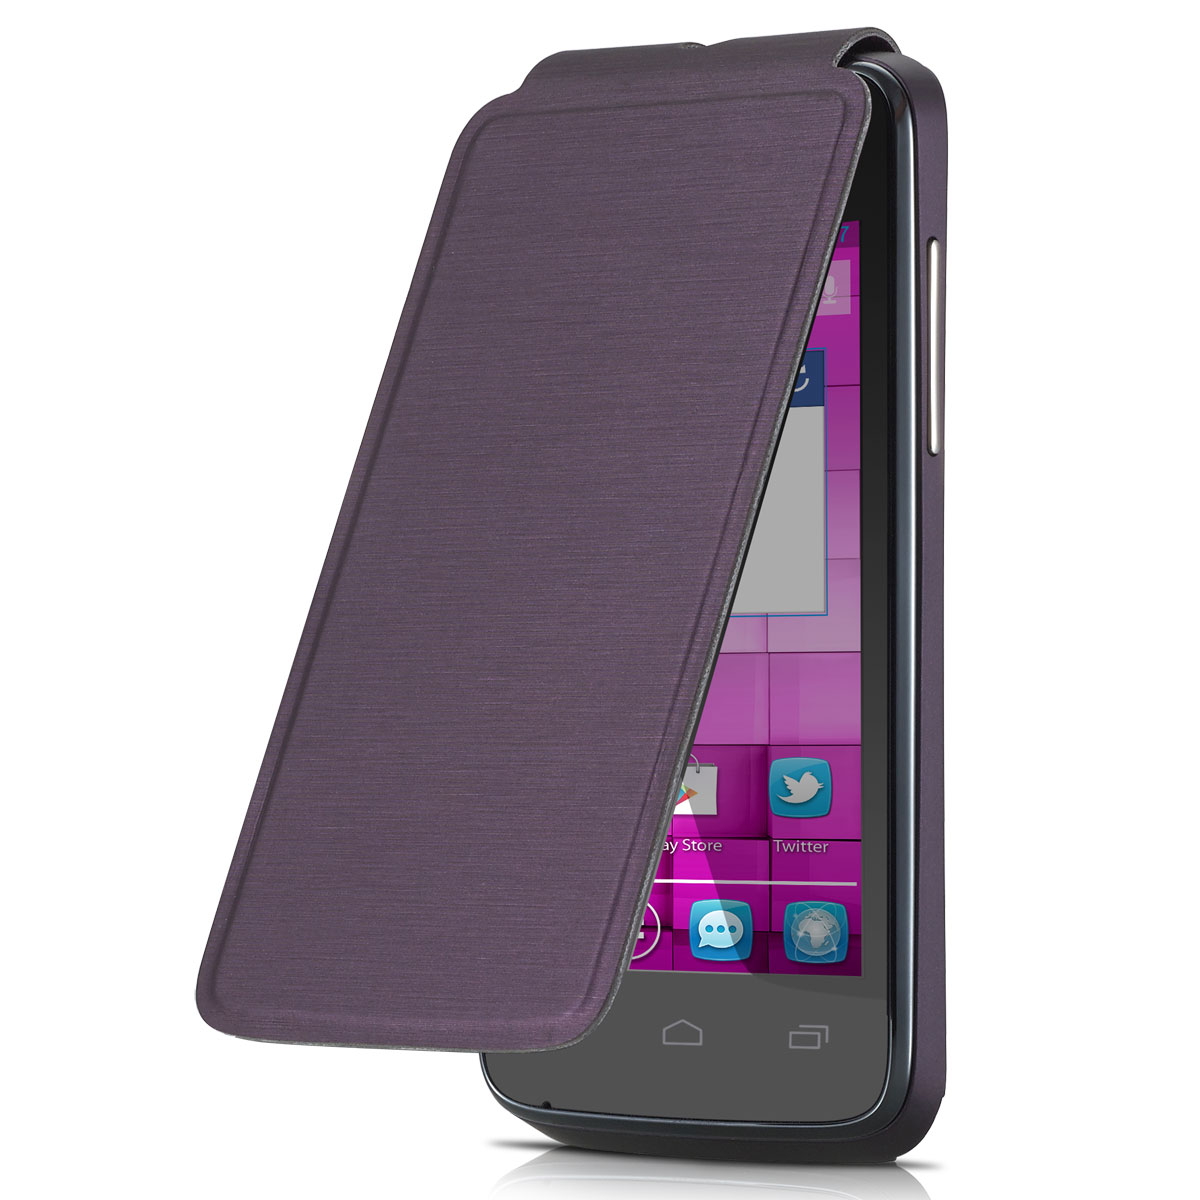 Etui téléphone Alcatel Flip Cover One Touch M'Pop Aubergine Etui Folio pour Alcatel One Touch M'Pop